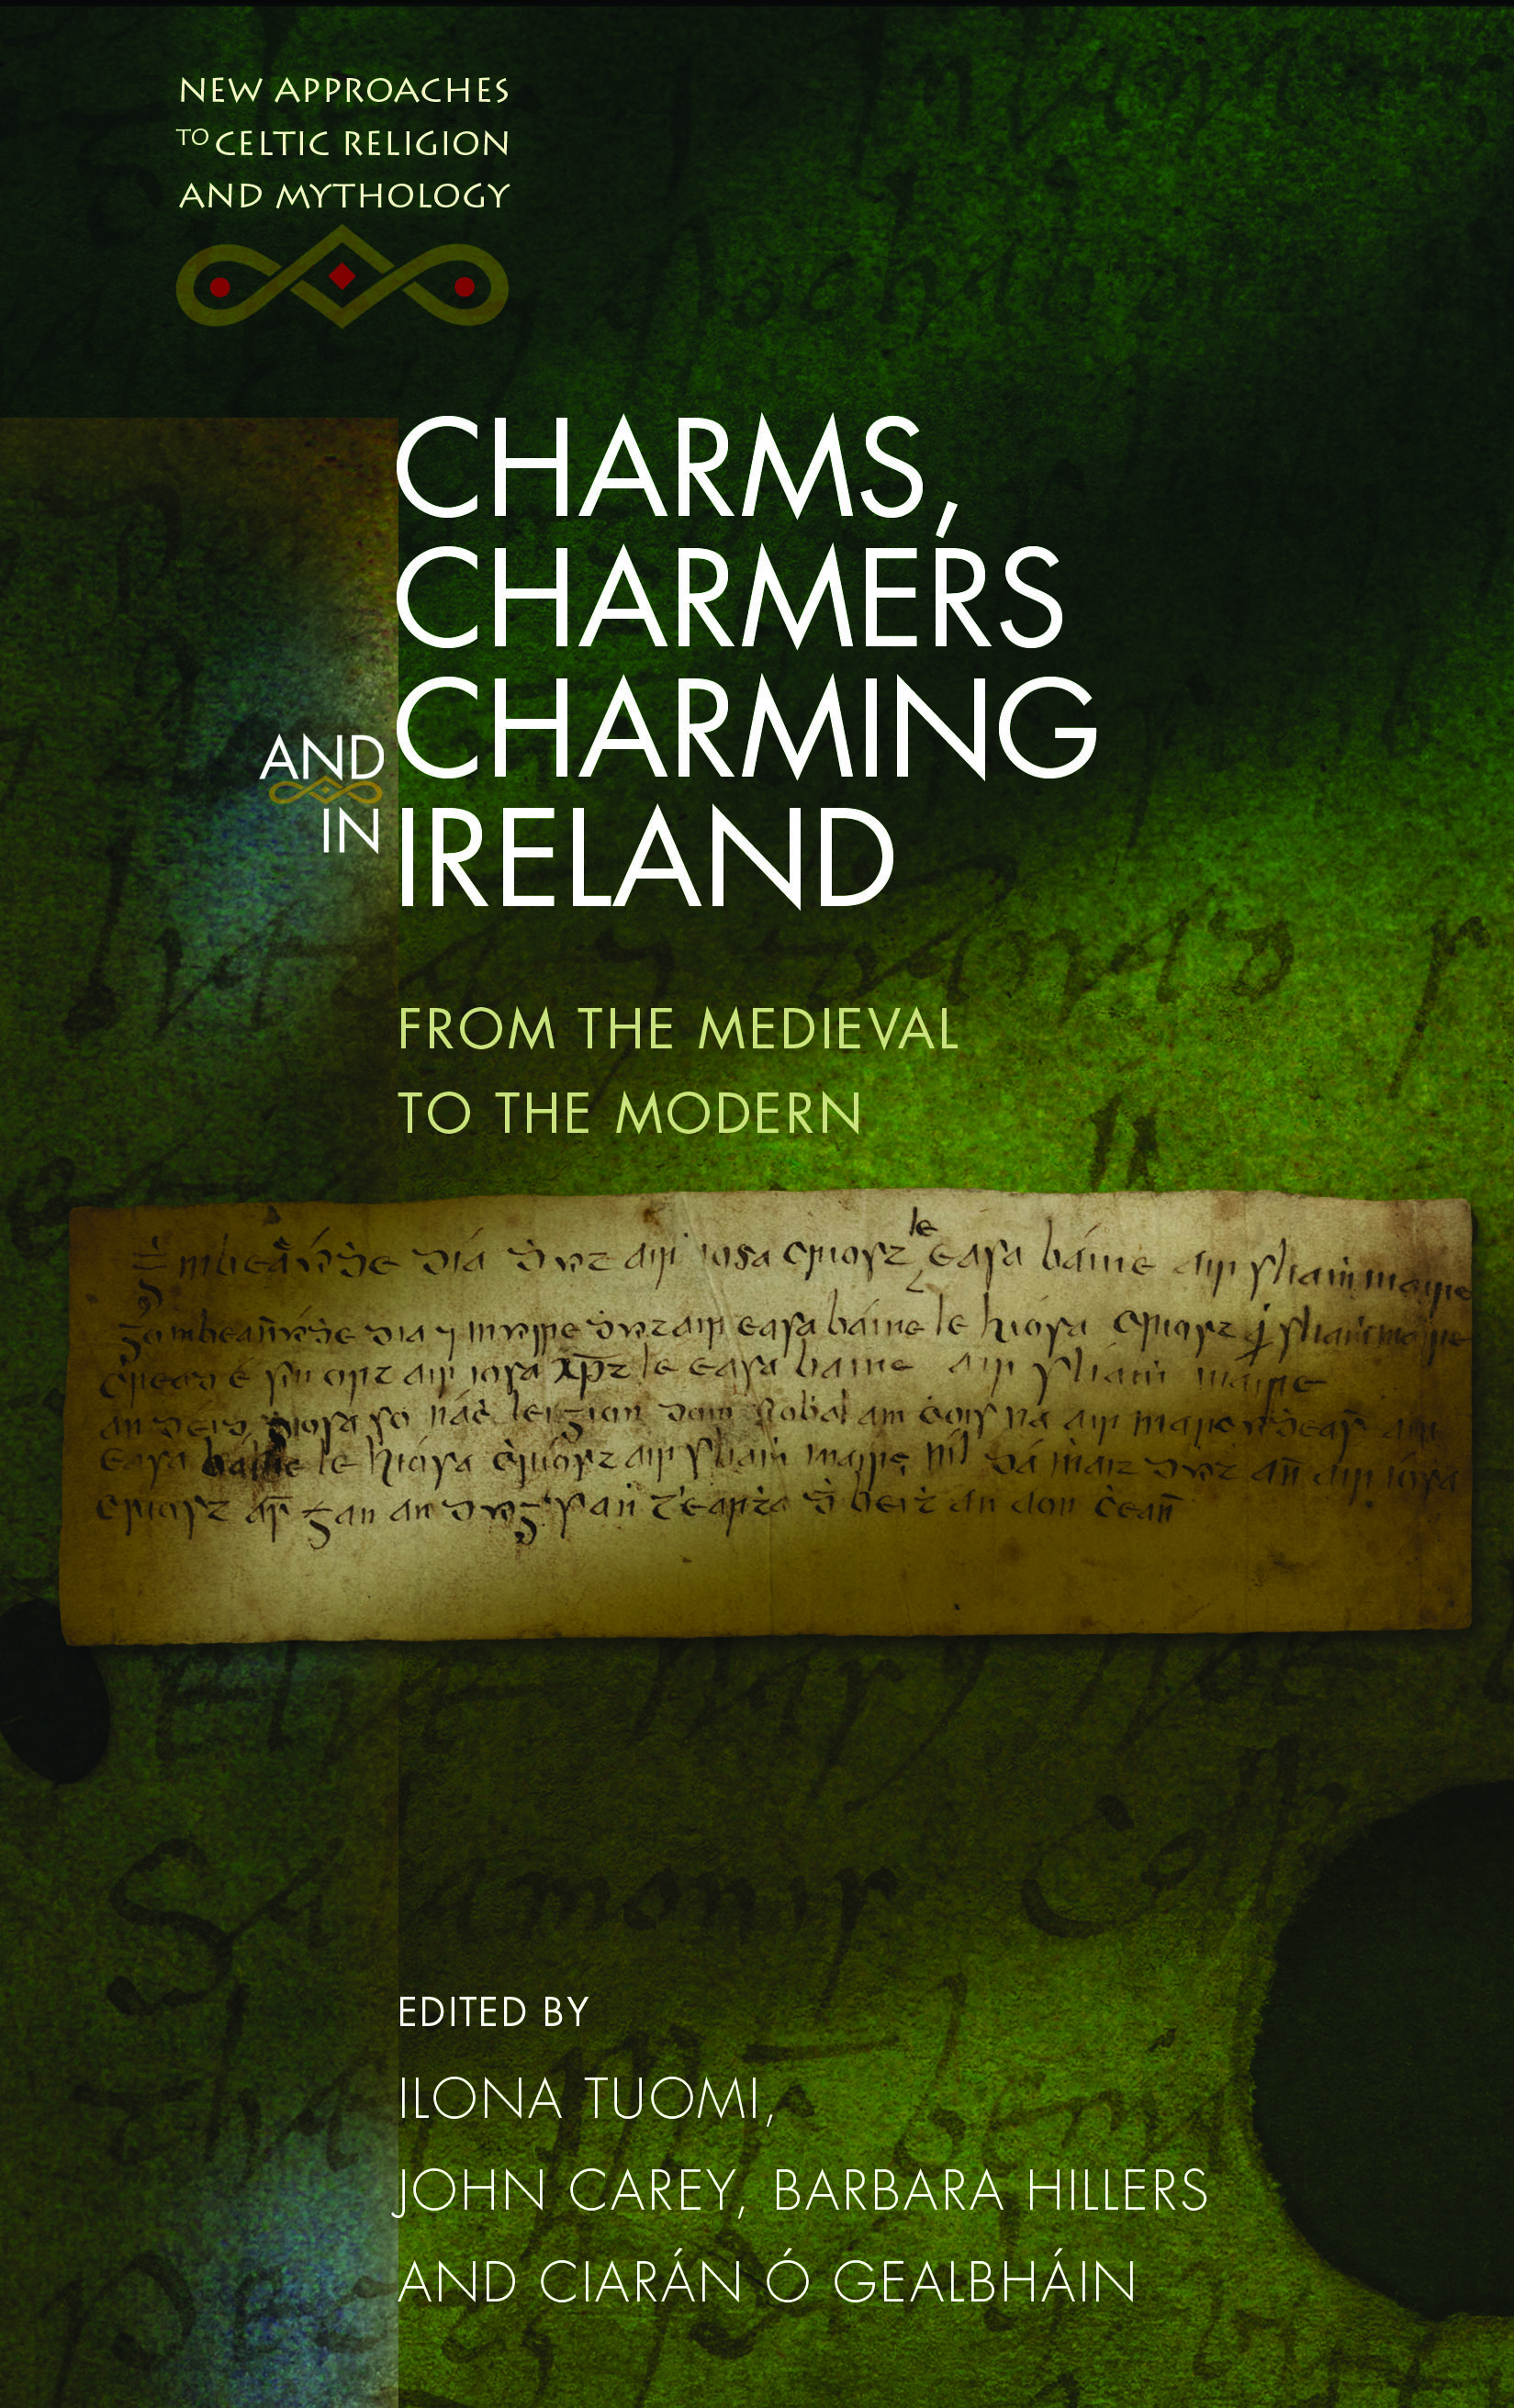 Charms, Charmers & Charming in Ireland